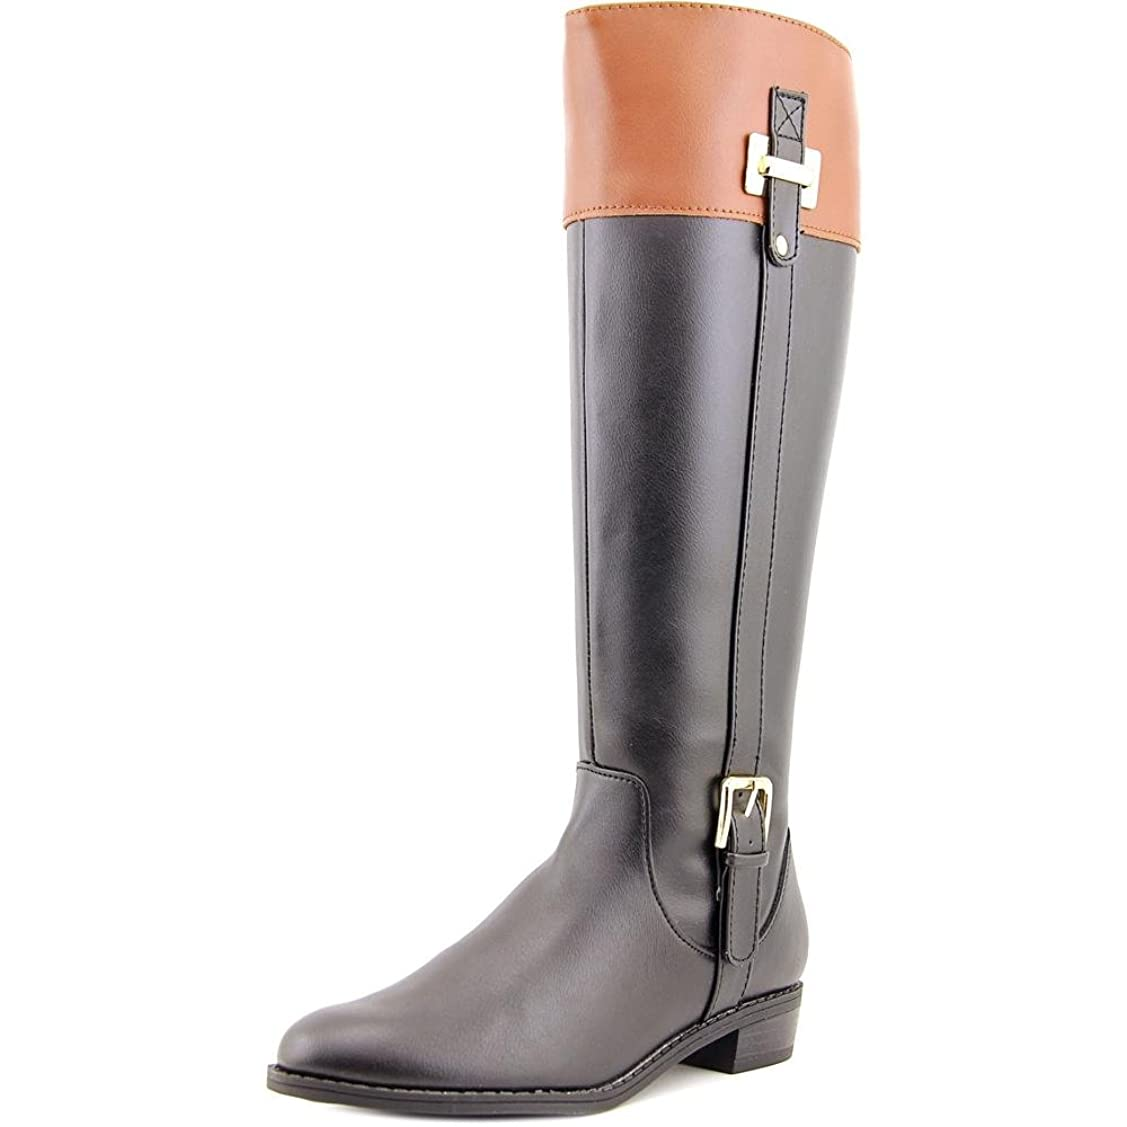 押し下げる超えてお願いします[Karen Scott] Womens Deliee Closed Toe Knee High Fashion Boots [並行輸入品]